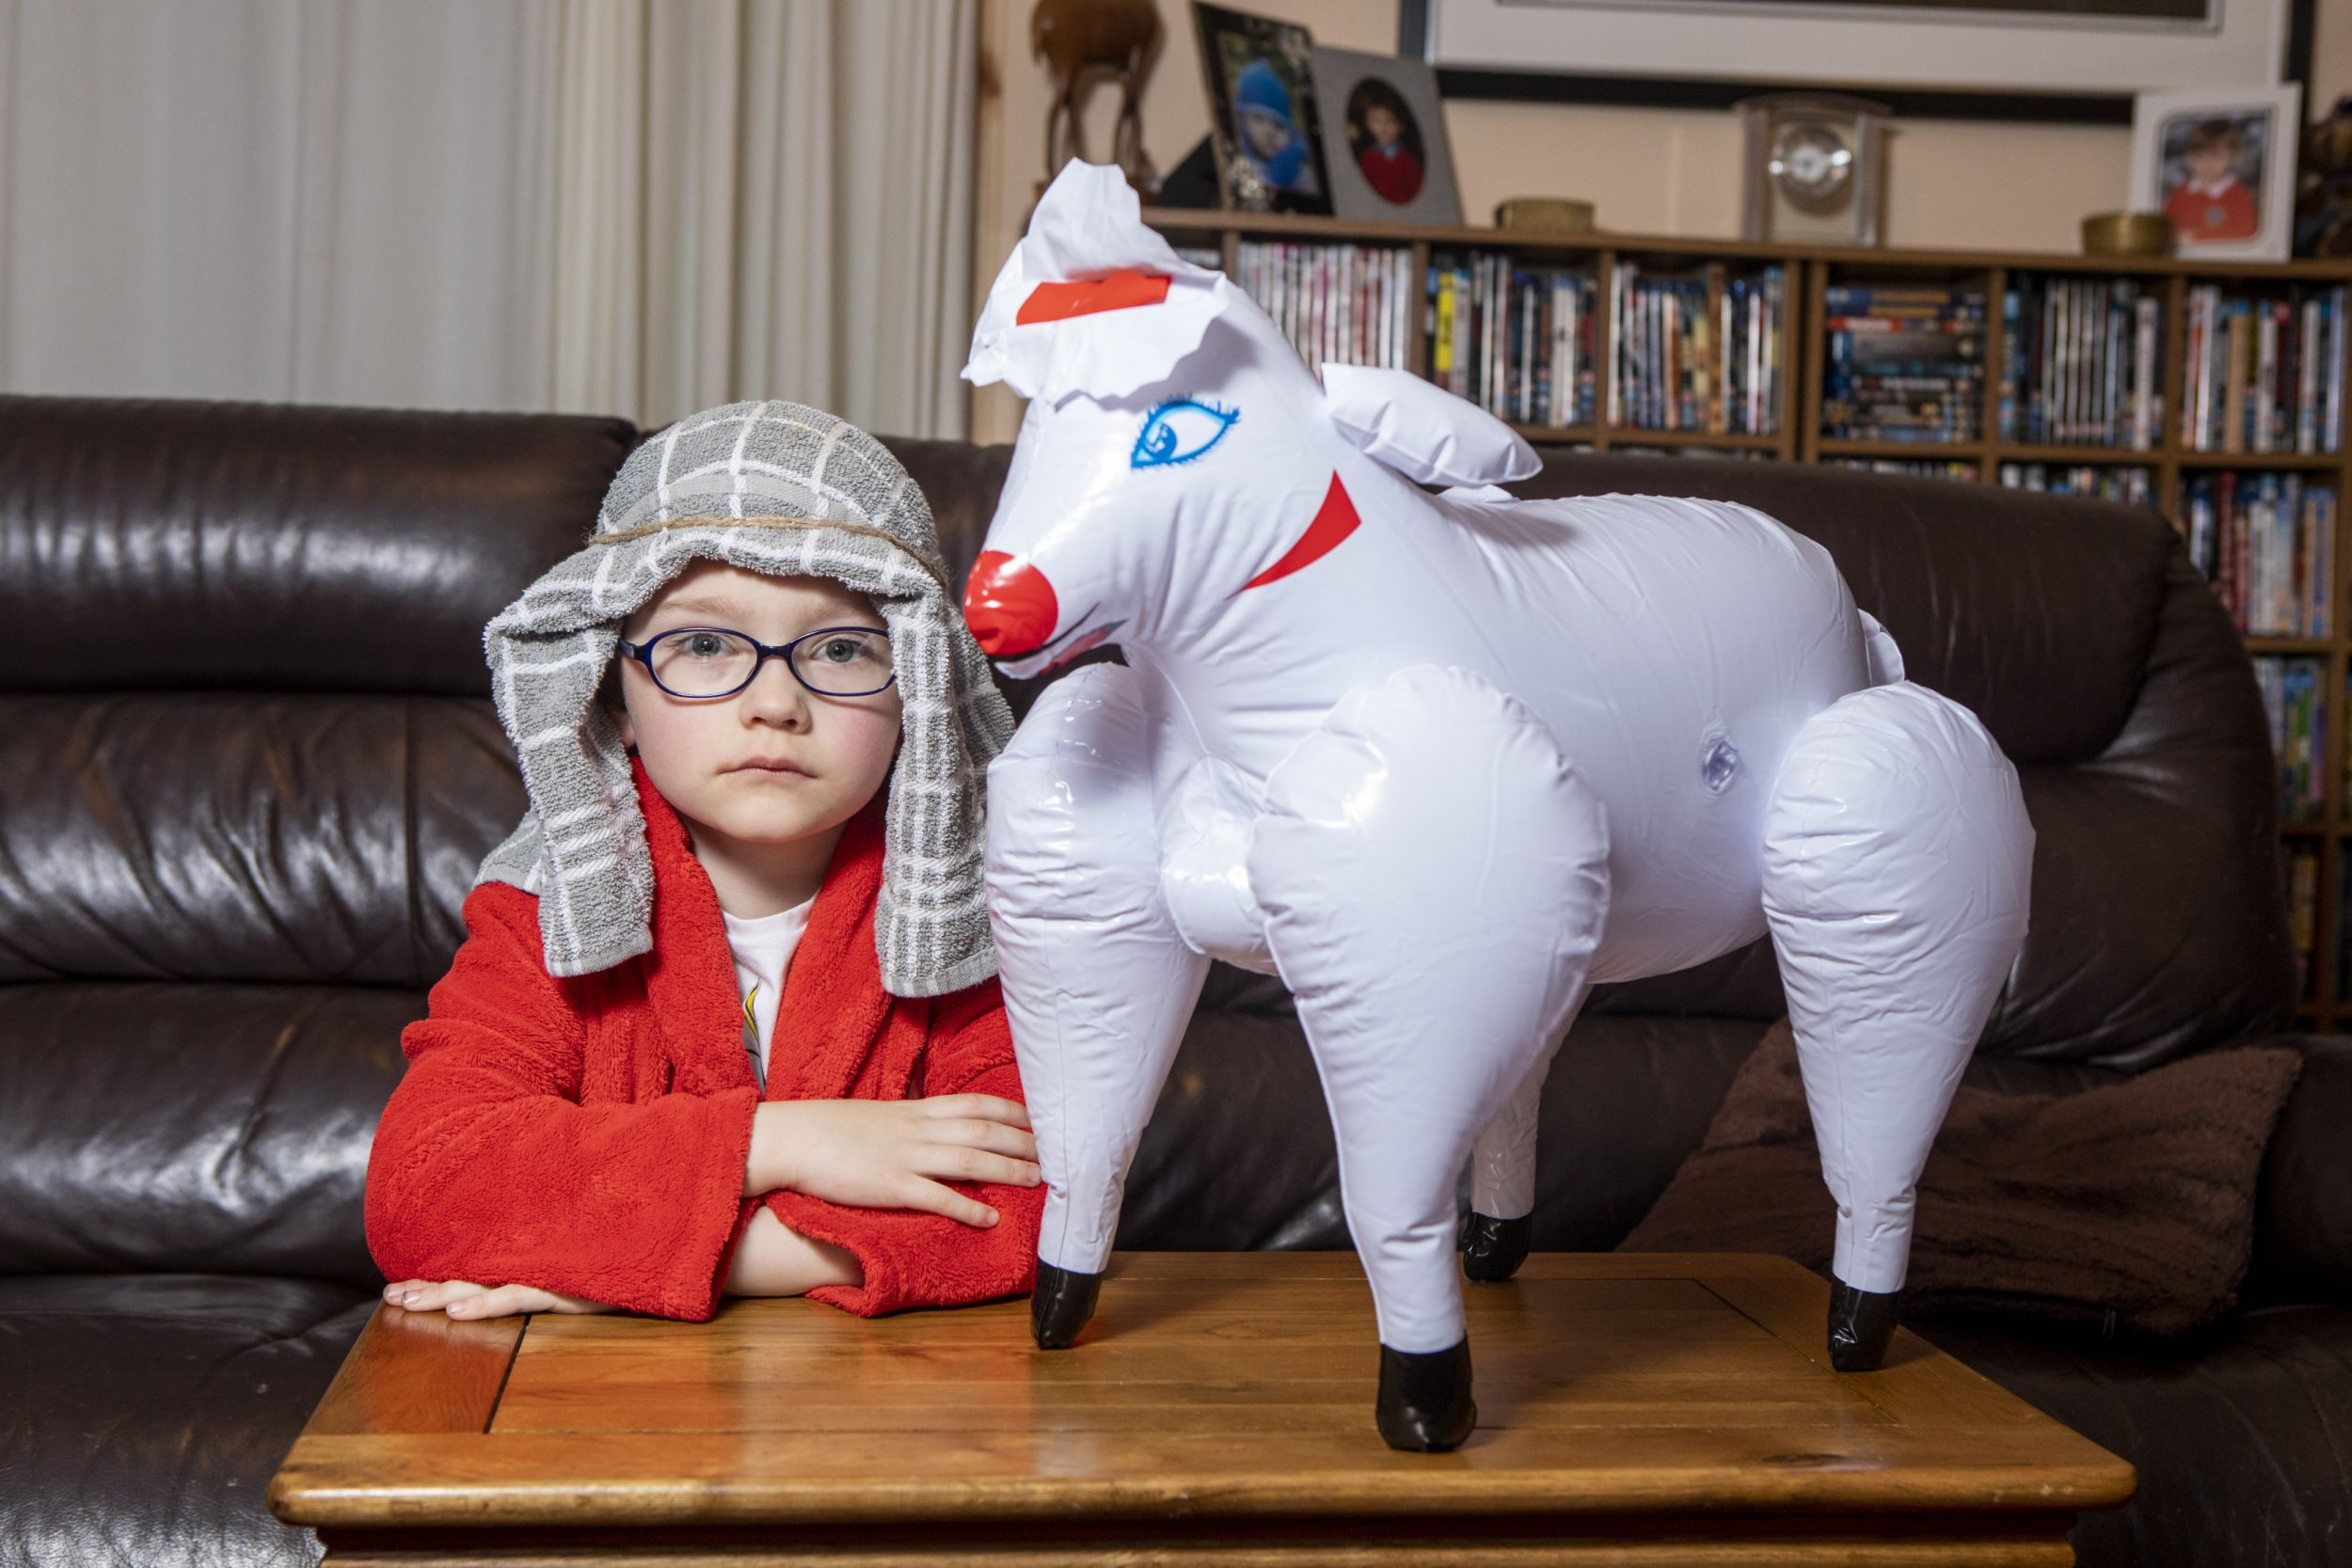 "Helen Cox's son Alfie and the inflatable sheep she bought as part of a shepherd outfit for Alfie's nativity play. When Alfie started to inflate the sheep his teachers realised it was a SEX DOLL. See SWNS story SWSYsheep; A mortified mum sent her five-year-old to his school nativity with a 'shepherd costume she bought online - before she realised it came with a blow up SEX DOLL sheep. Helen Cox, 46, bought the ?16.99 fancy dress costume from Amazon for son Alfie's school nativity, and the lad was delighted it came with a free blow up flock. She was puzzled when a teacher told the lad to ""take it home"" until she blew it up and found it had a huge hole in its bottom - as well as red lips and eyelashes. The mum-of-two found the exact same sheep was on sale as a ""stag night bonkin' sheep"" - and is now devising a way to steal it away from unaware Alfie."